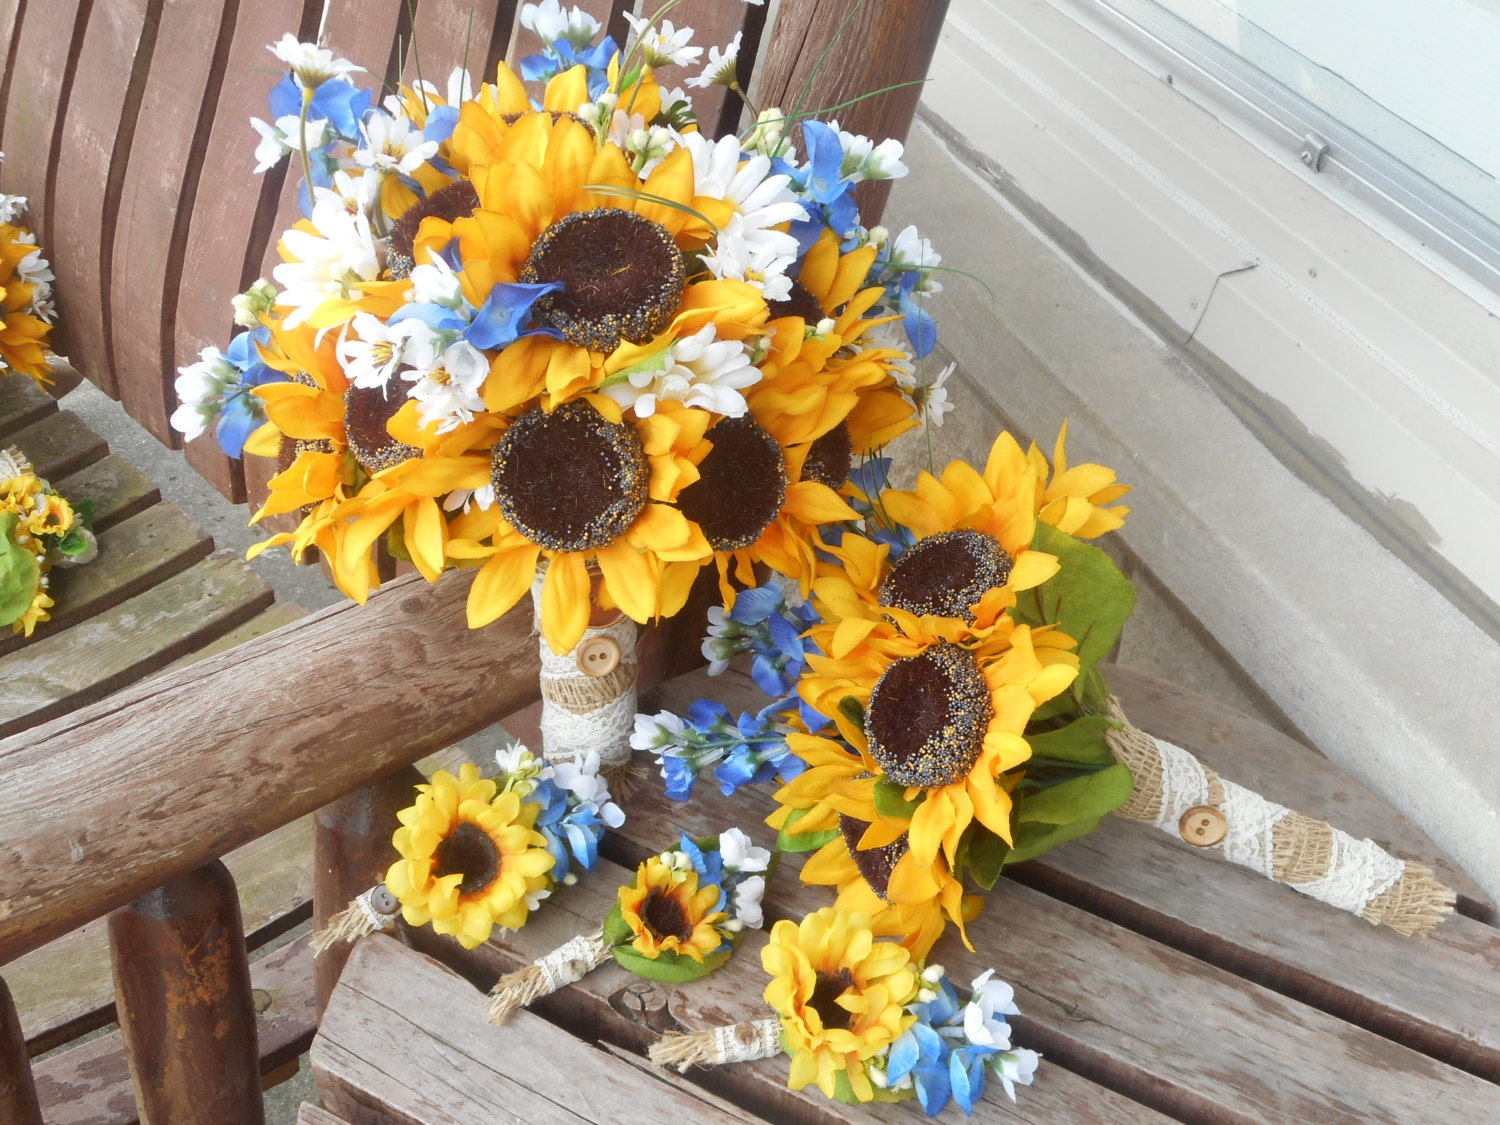 12 Pc Sunflowers And Texas Bluebonnets Rustic Wedding Etsy